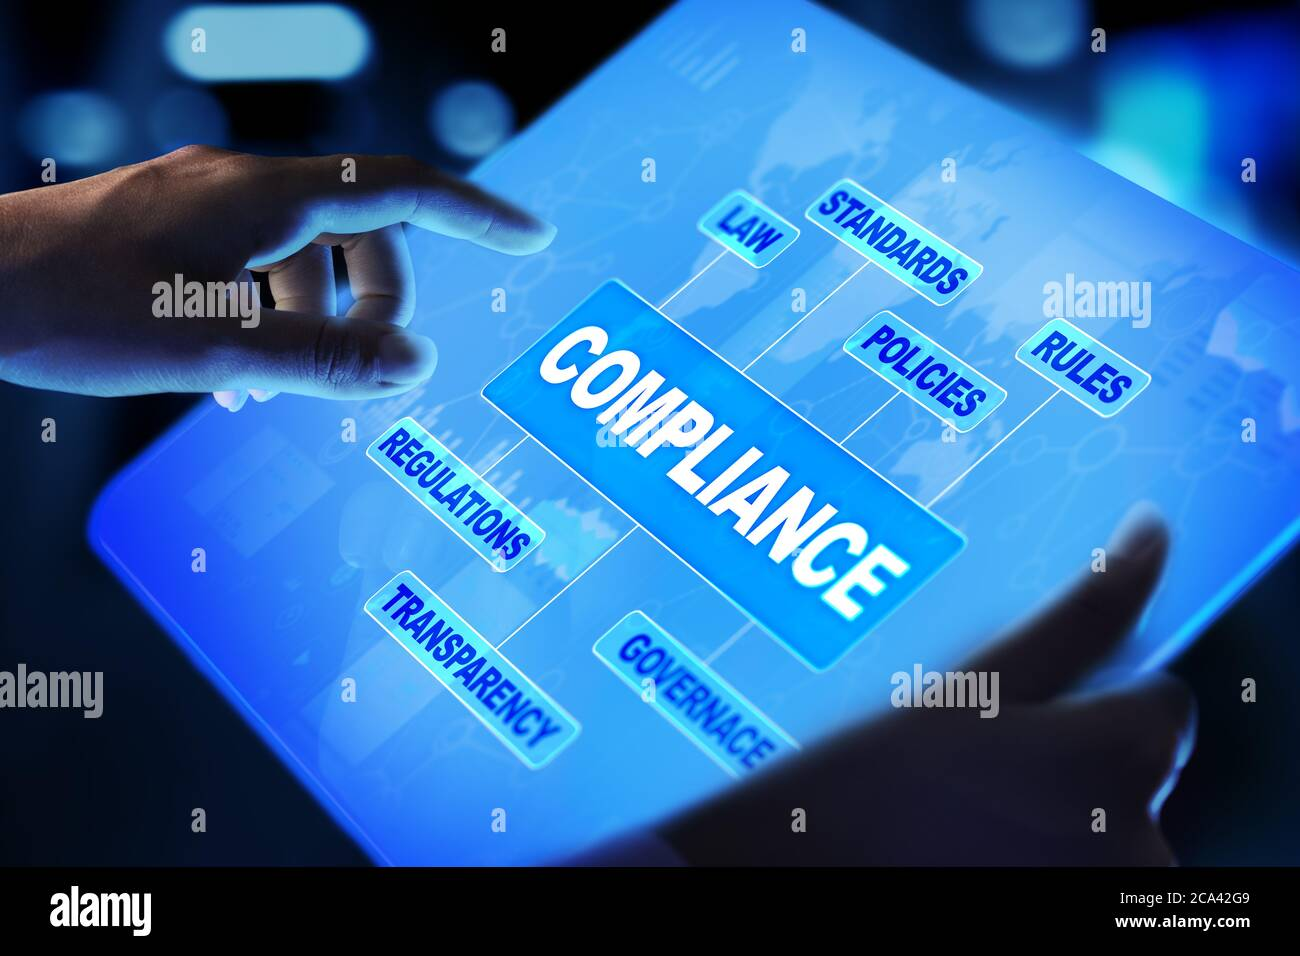 Compliance concept with icons and text. Regulations, law, standards, requirements, audit diagram on virtual screen Stock Photo